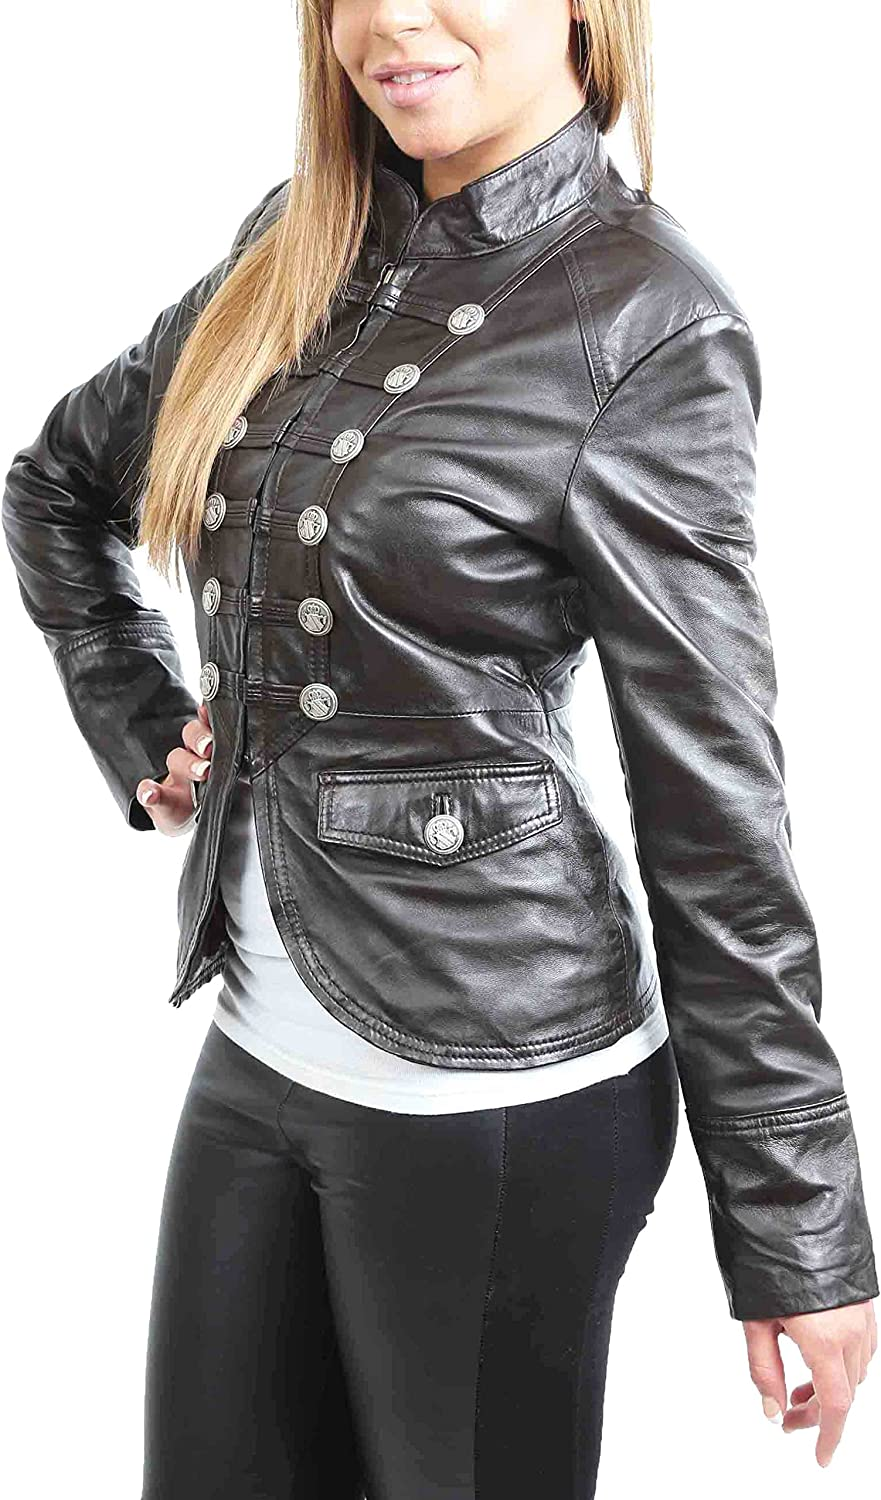 A1 FASHION GOODS Womens Leather Casual Jacket Military Punk Style Brown Coat Aria